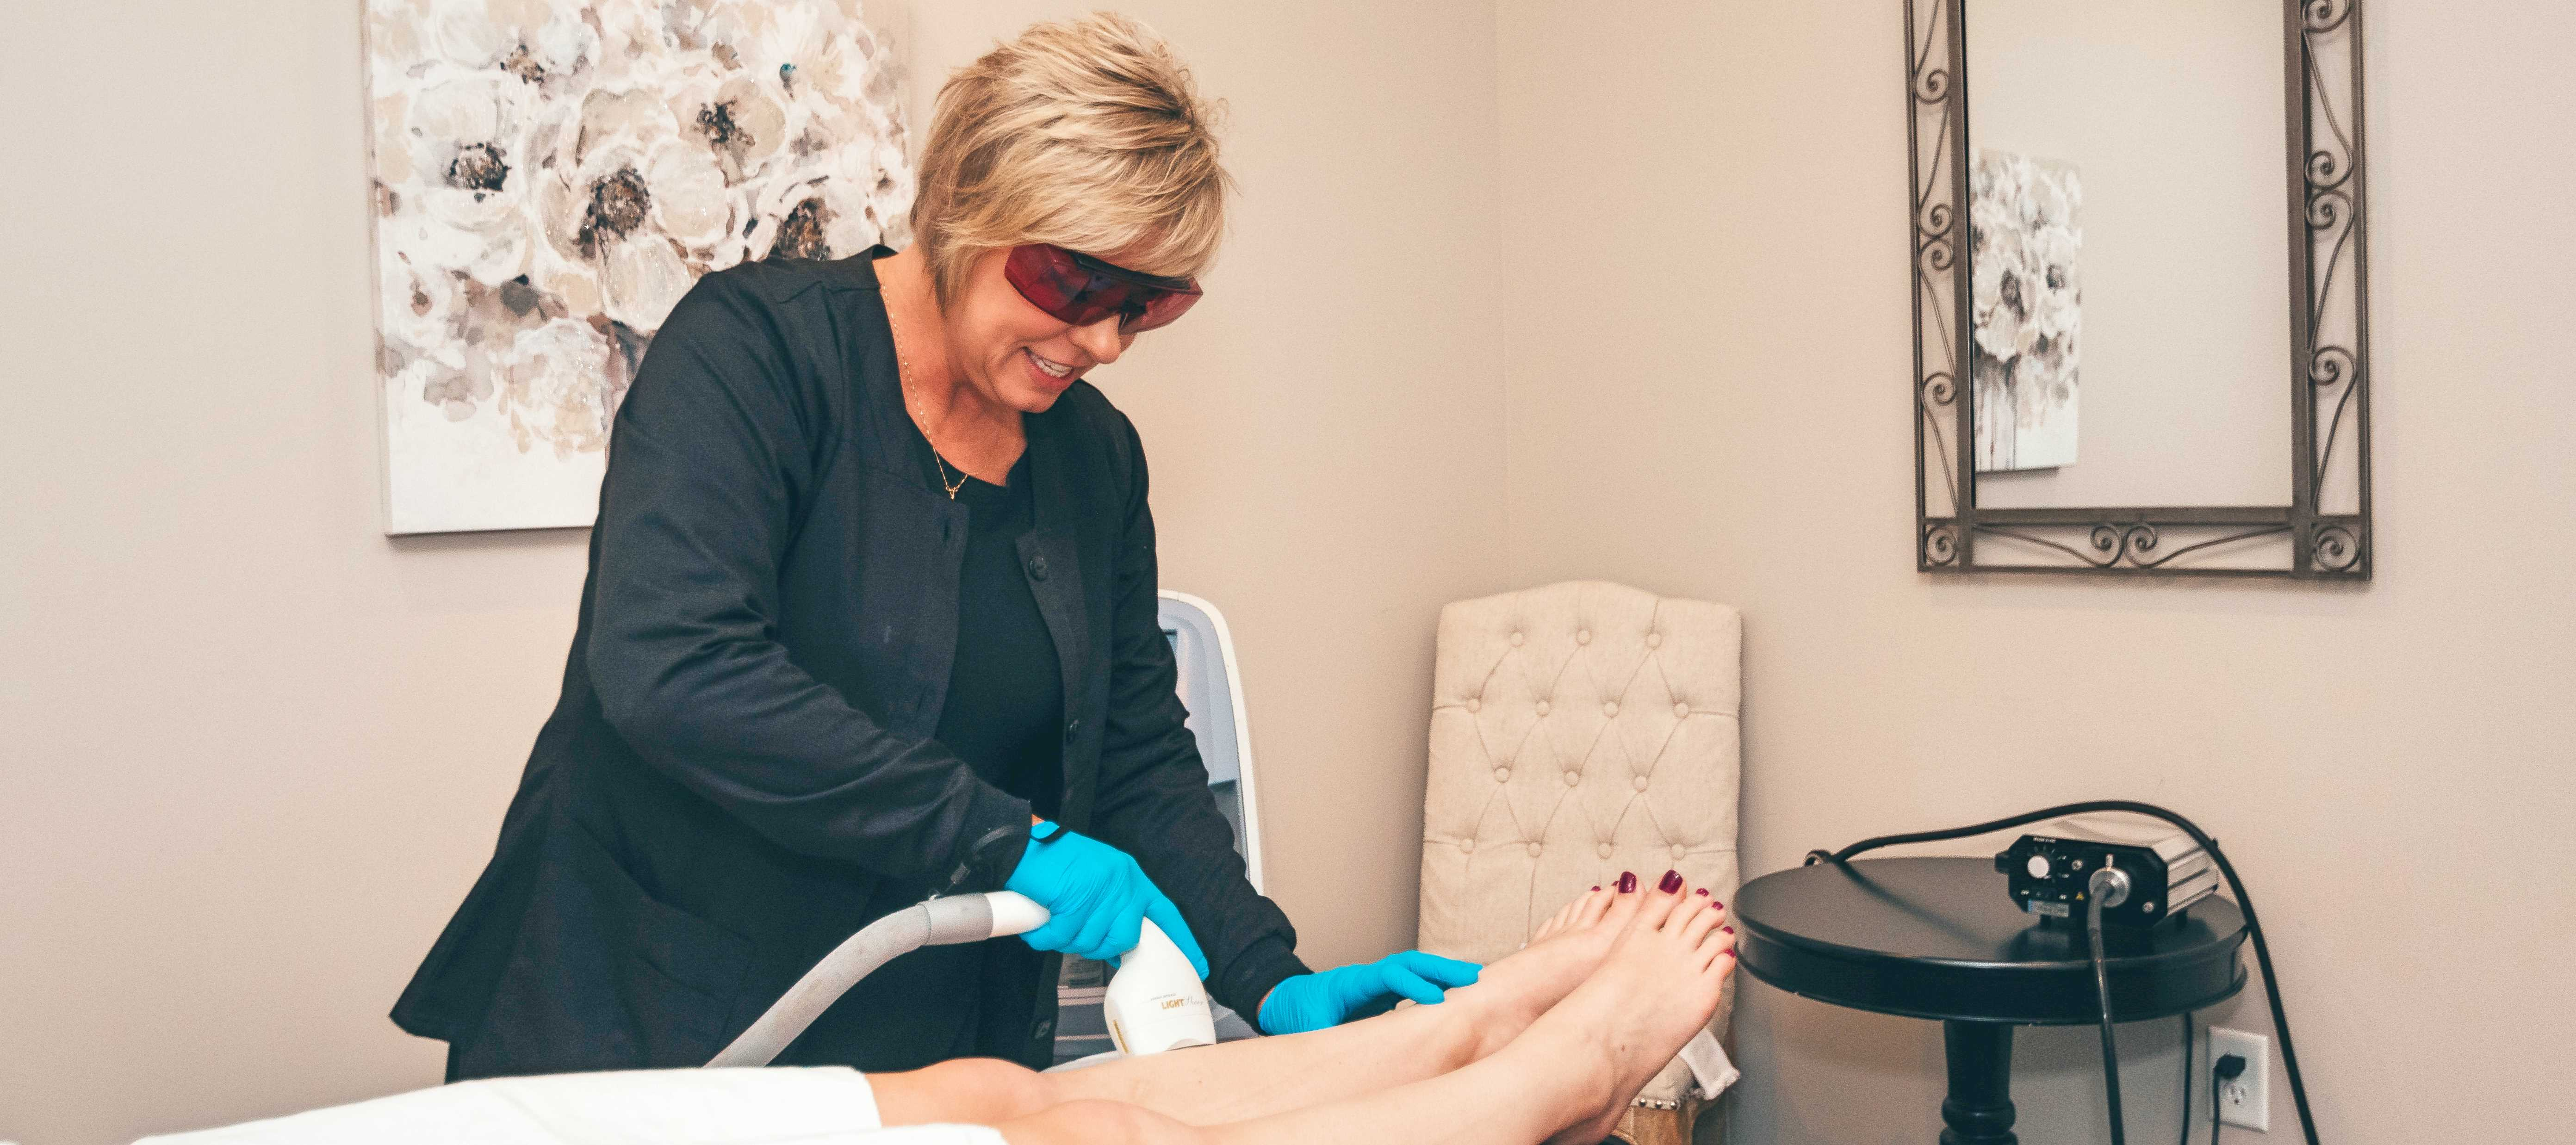 Laser Hair Removal - Facial Hair Removal in Springfield Missouri